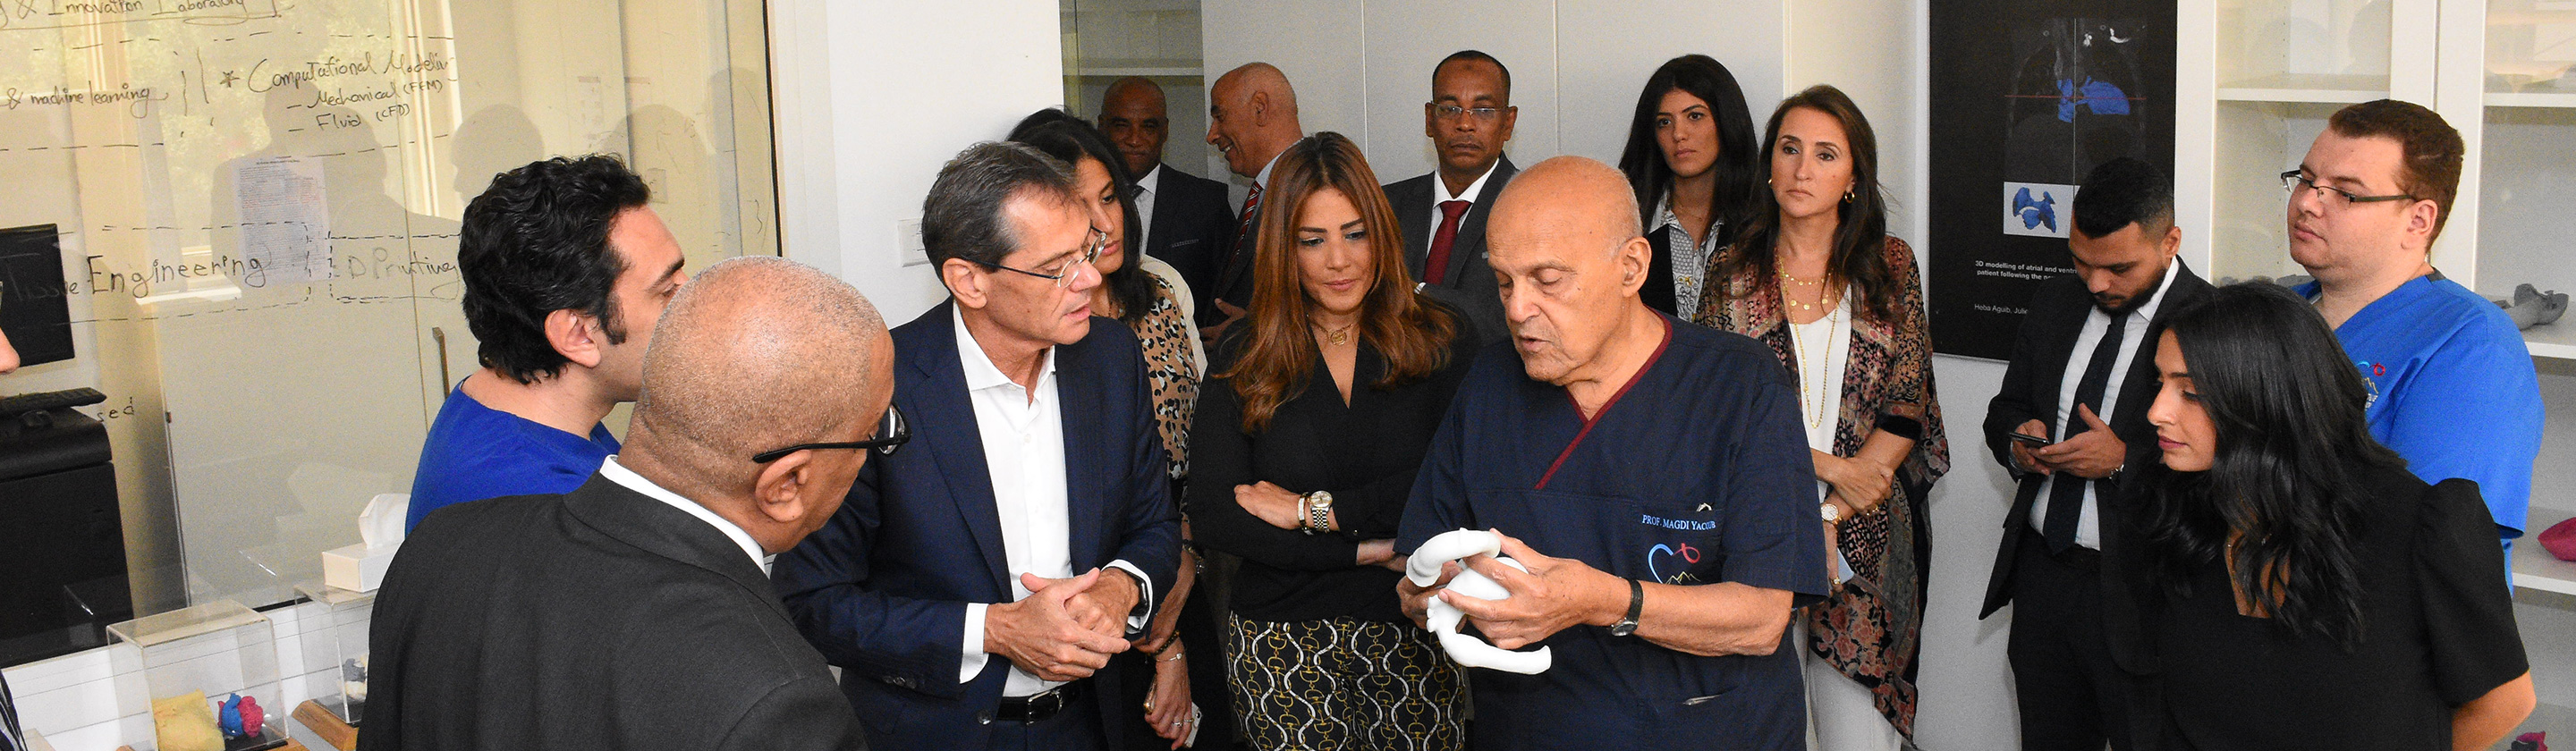 Magdi Yacoub Foundation